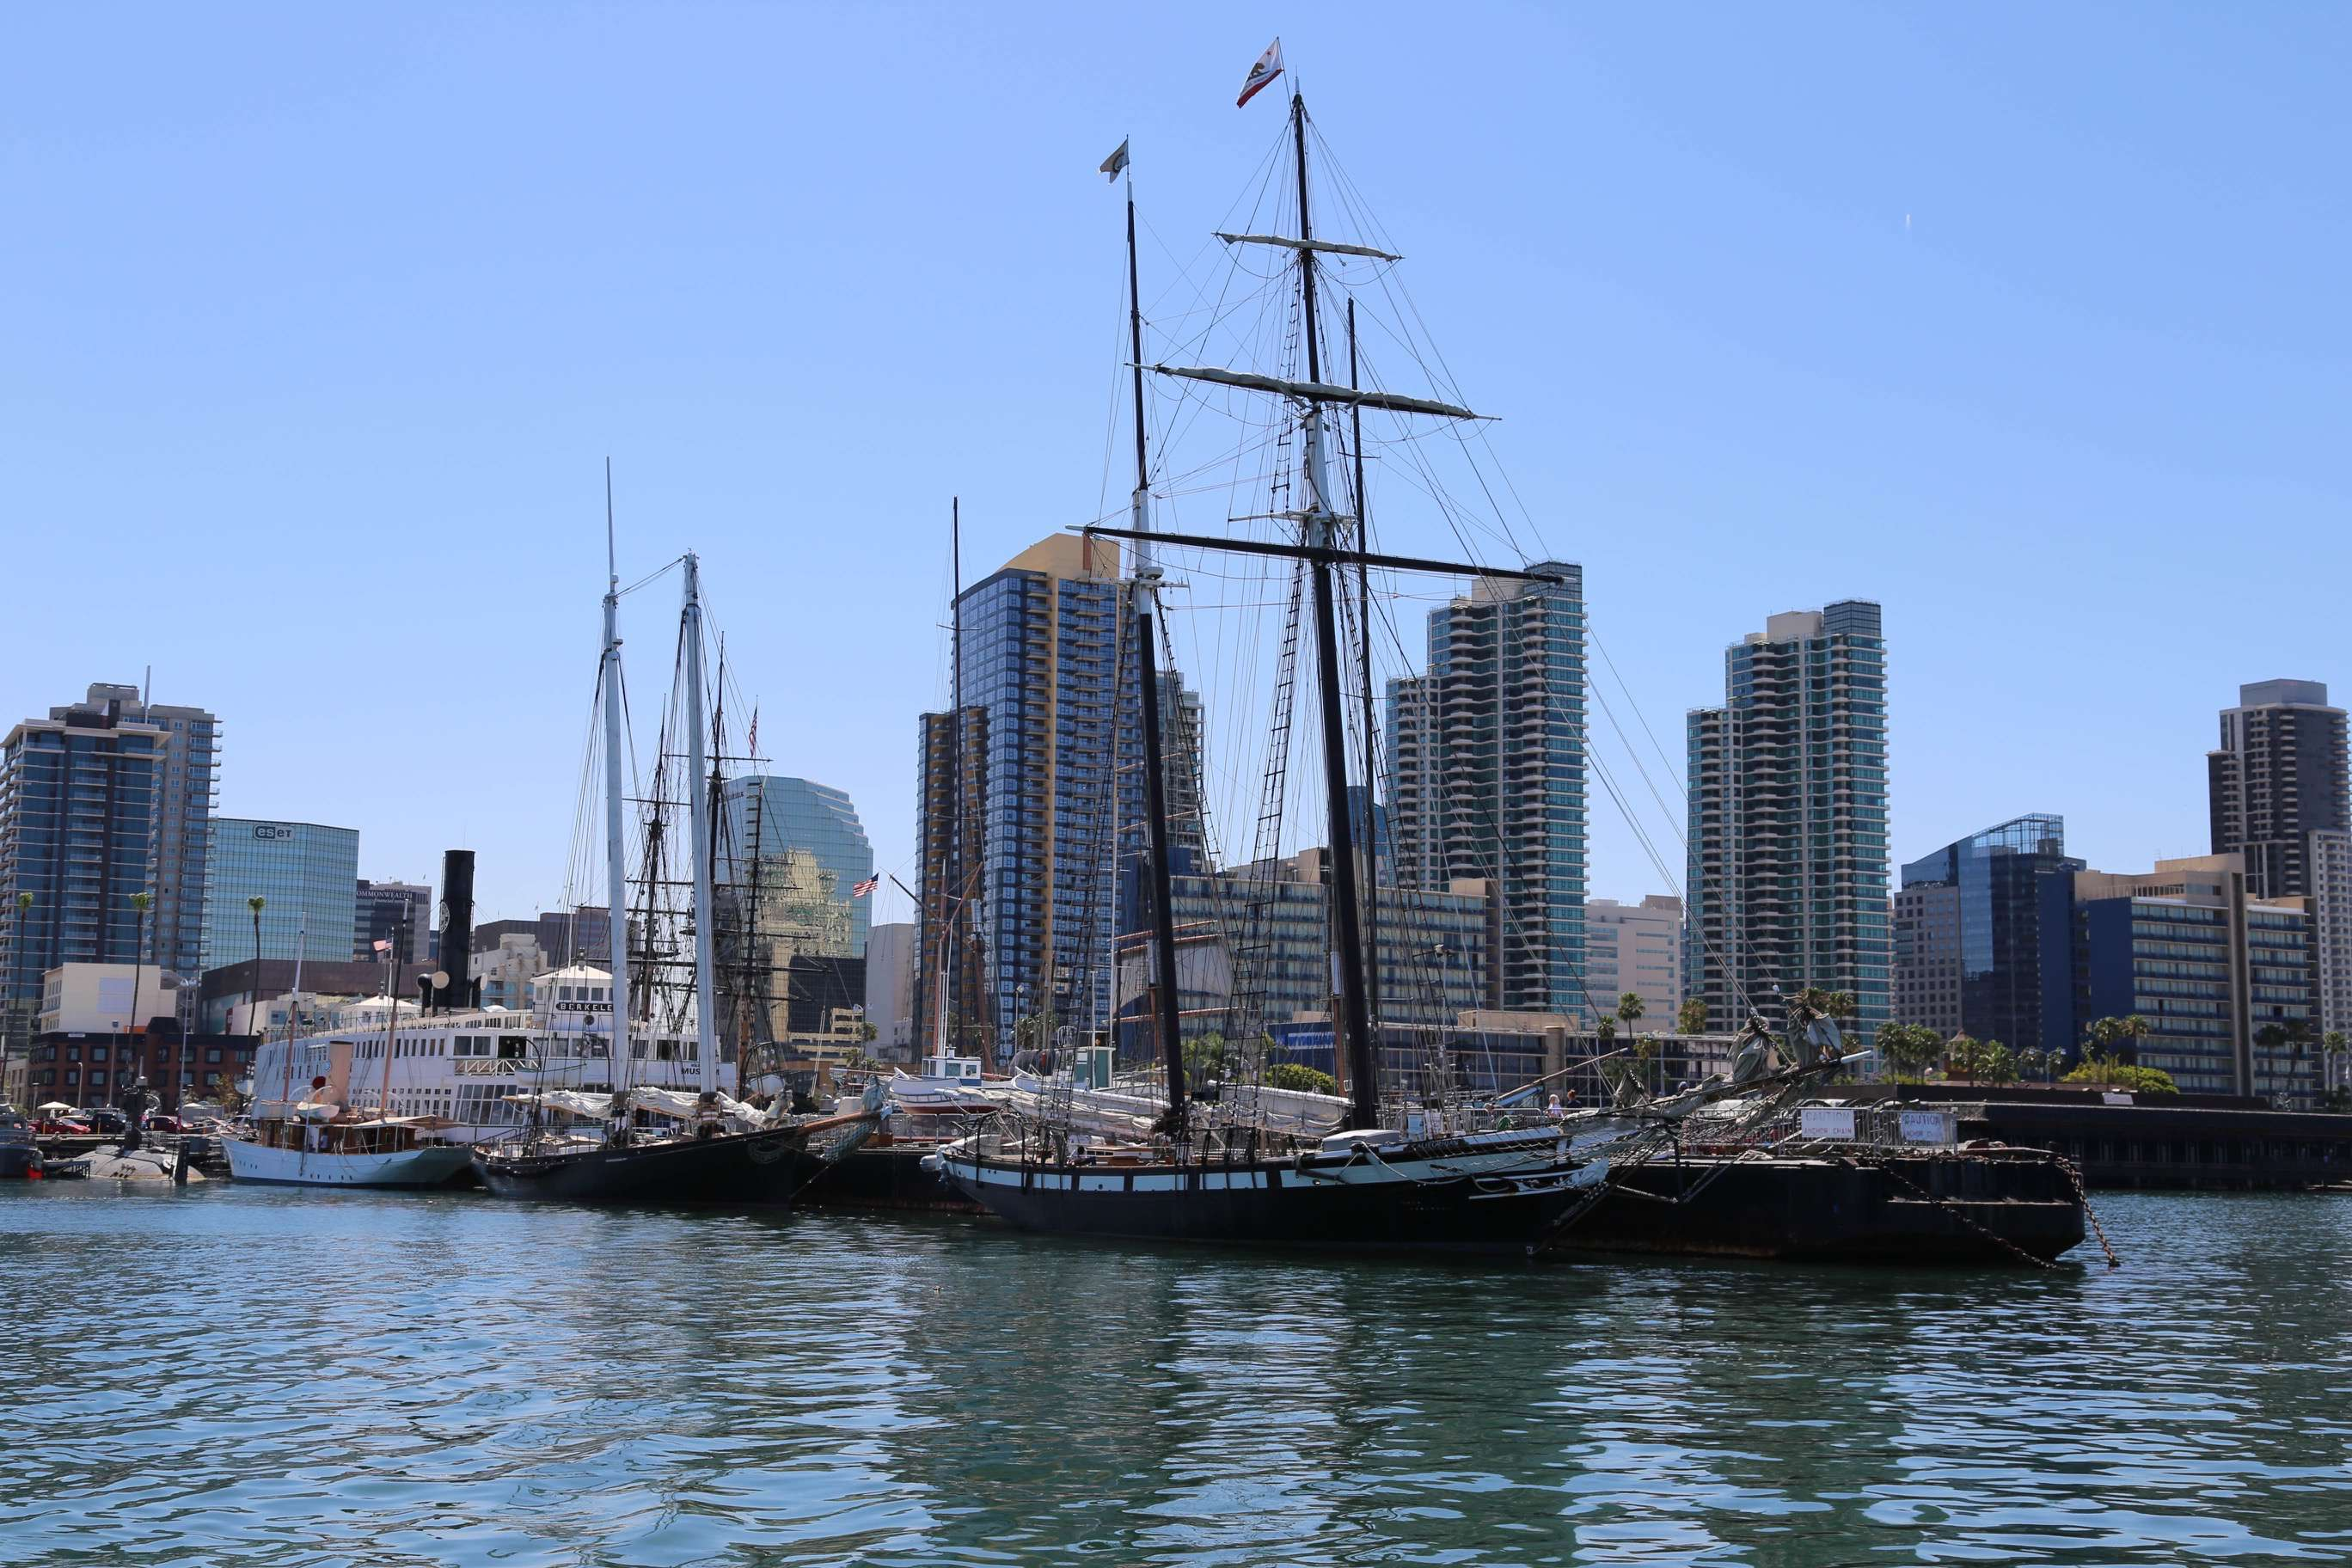 San Diego has a wonderful collection of old sailing ships that are convenient to the downtown area.